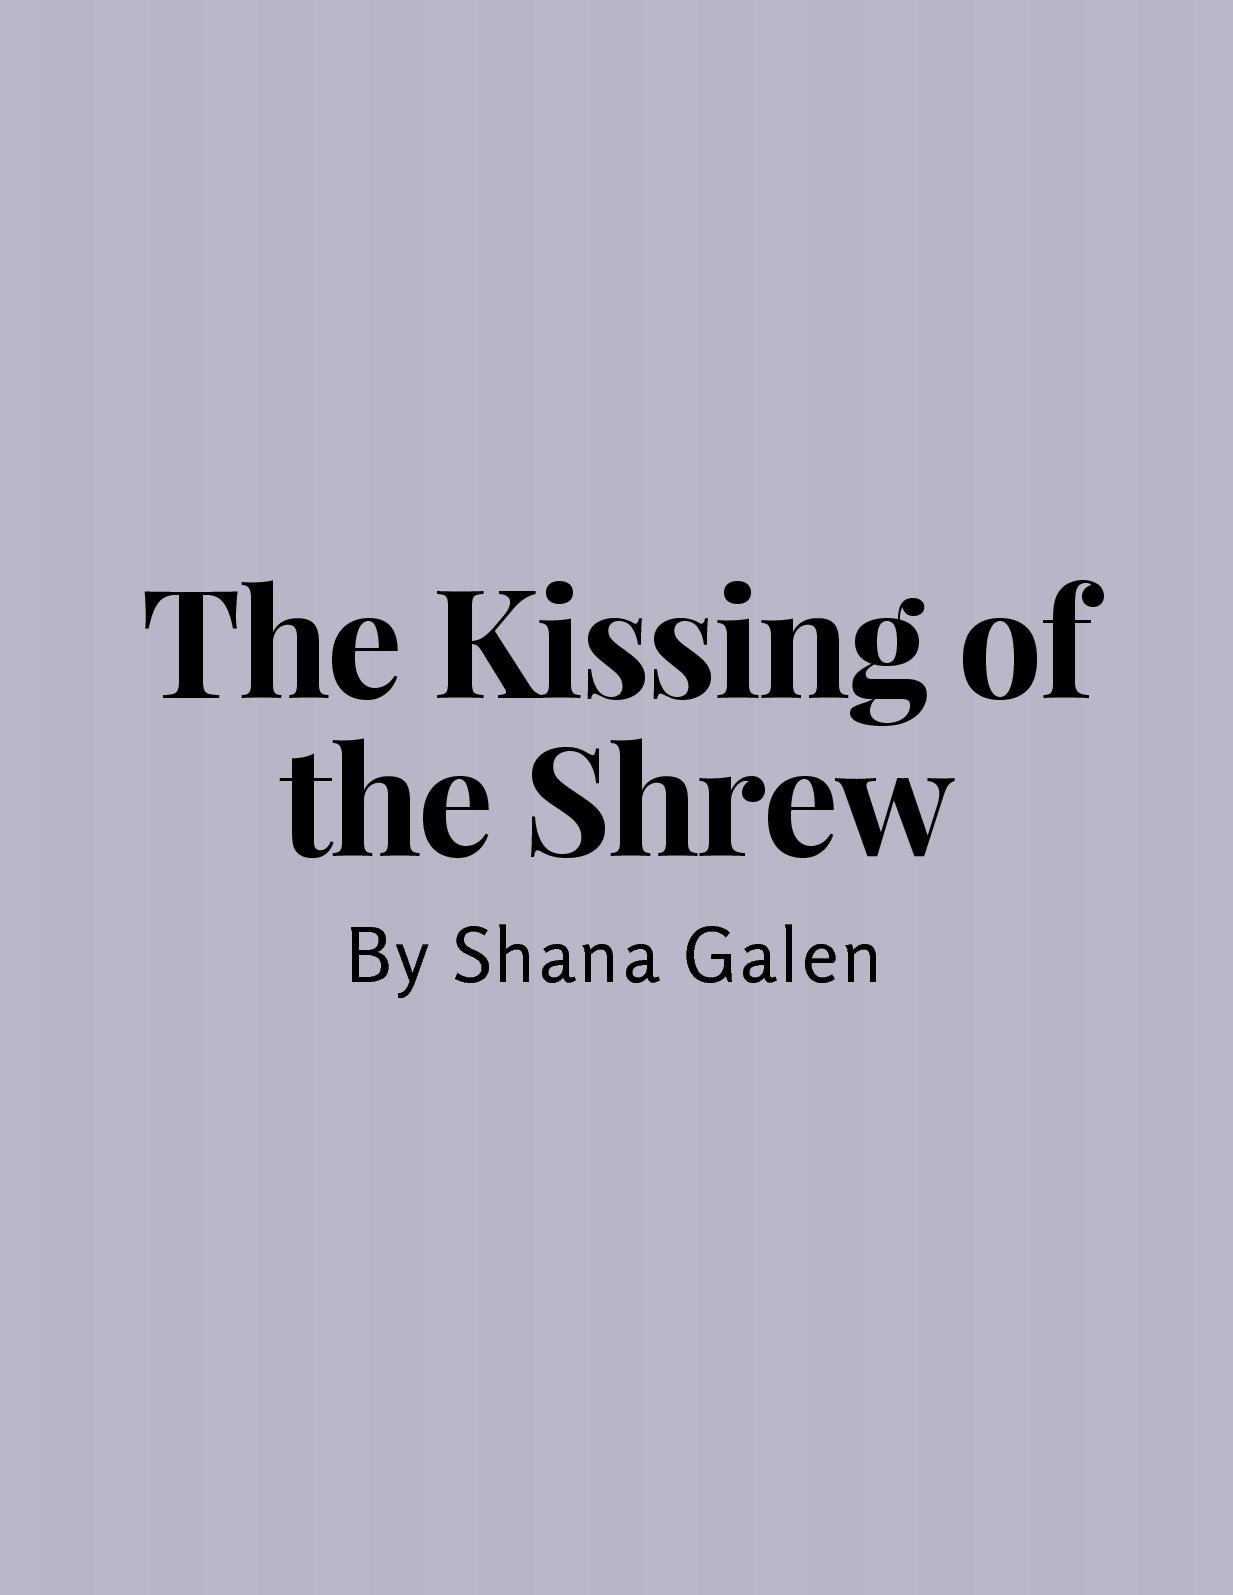 The Kissing Of The Shrew